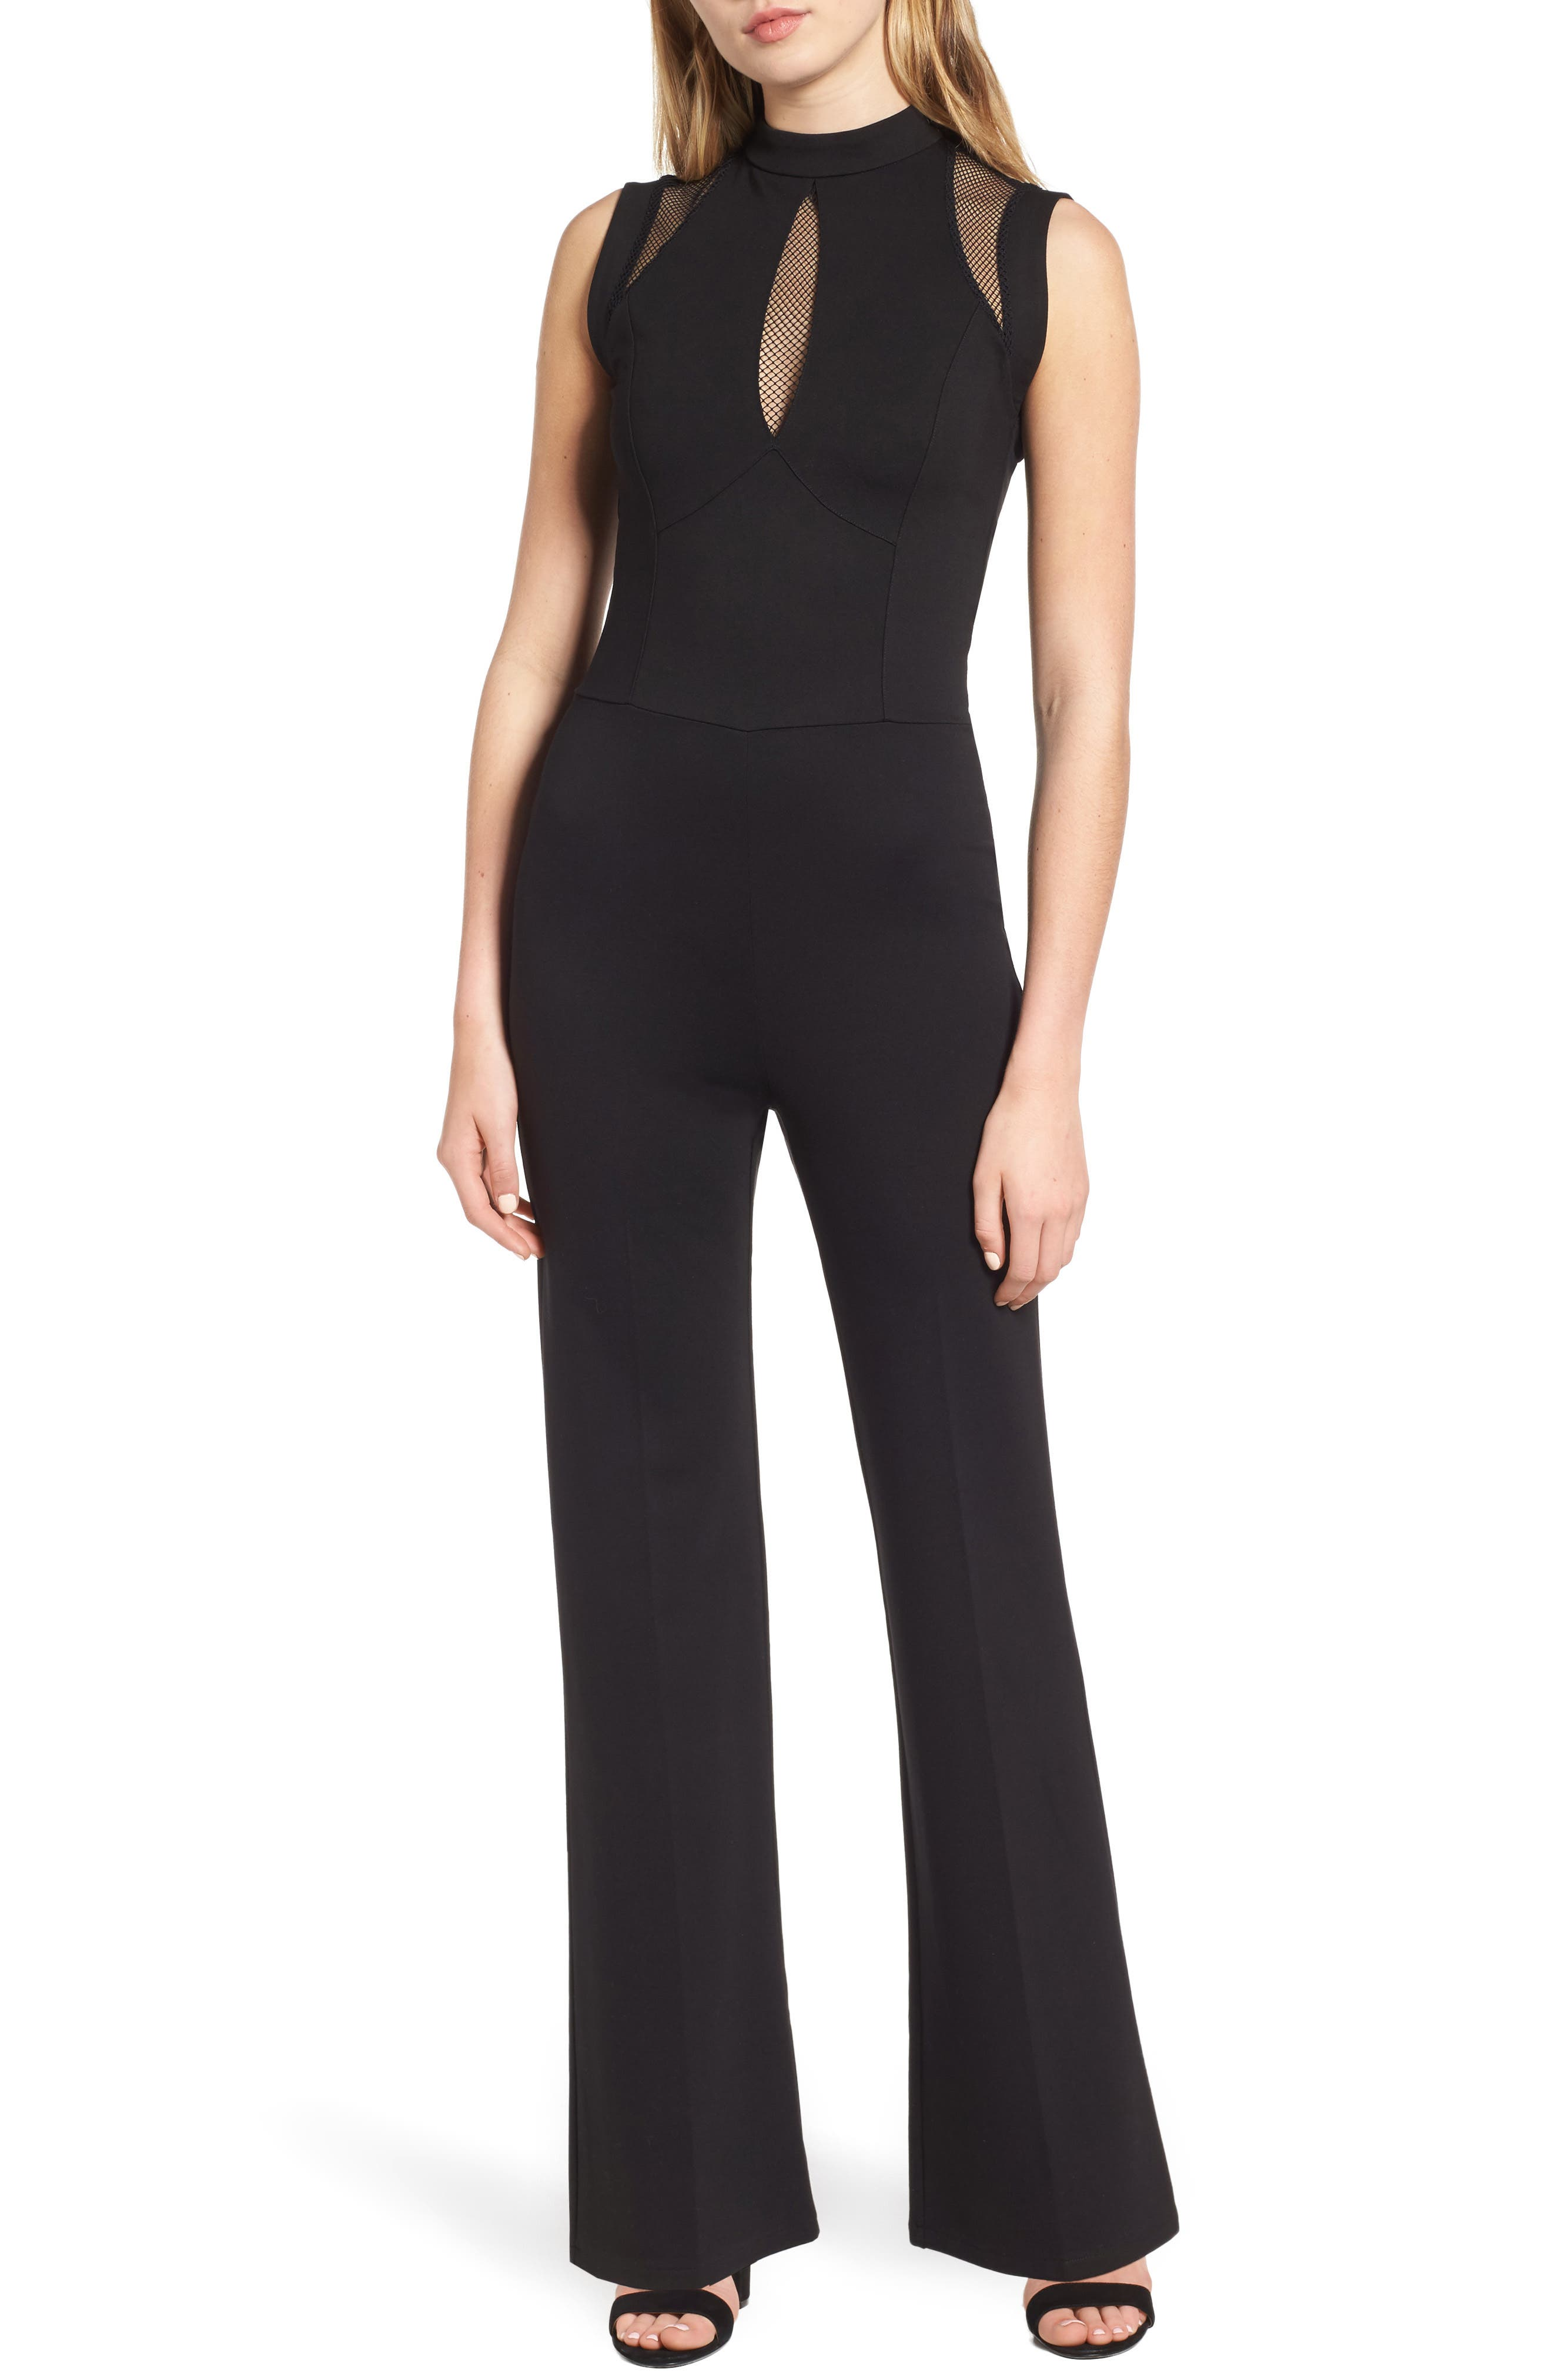 Sentimental NY Galactica Jumpsuit